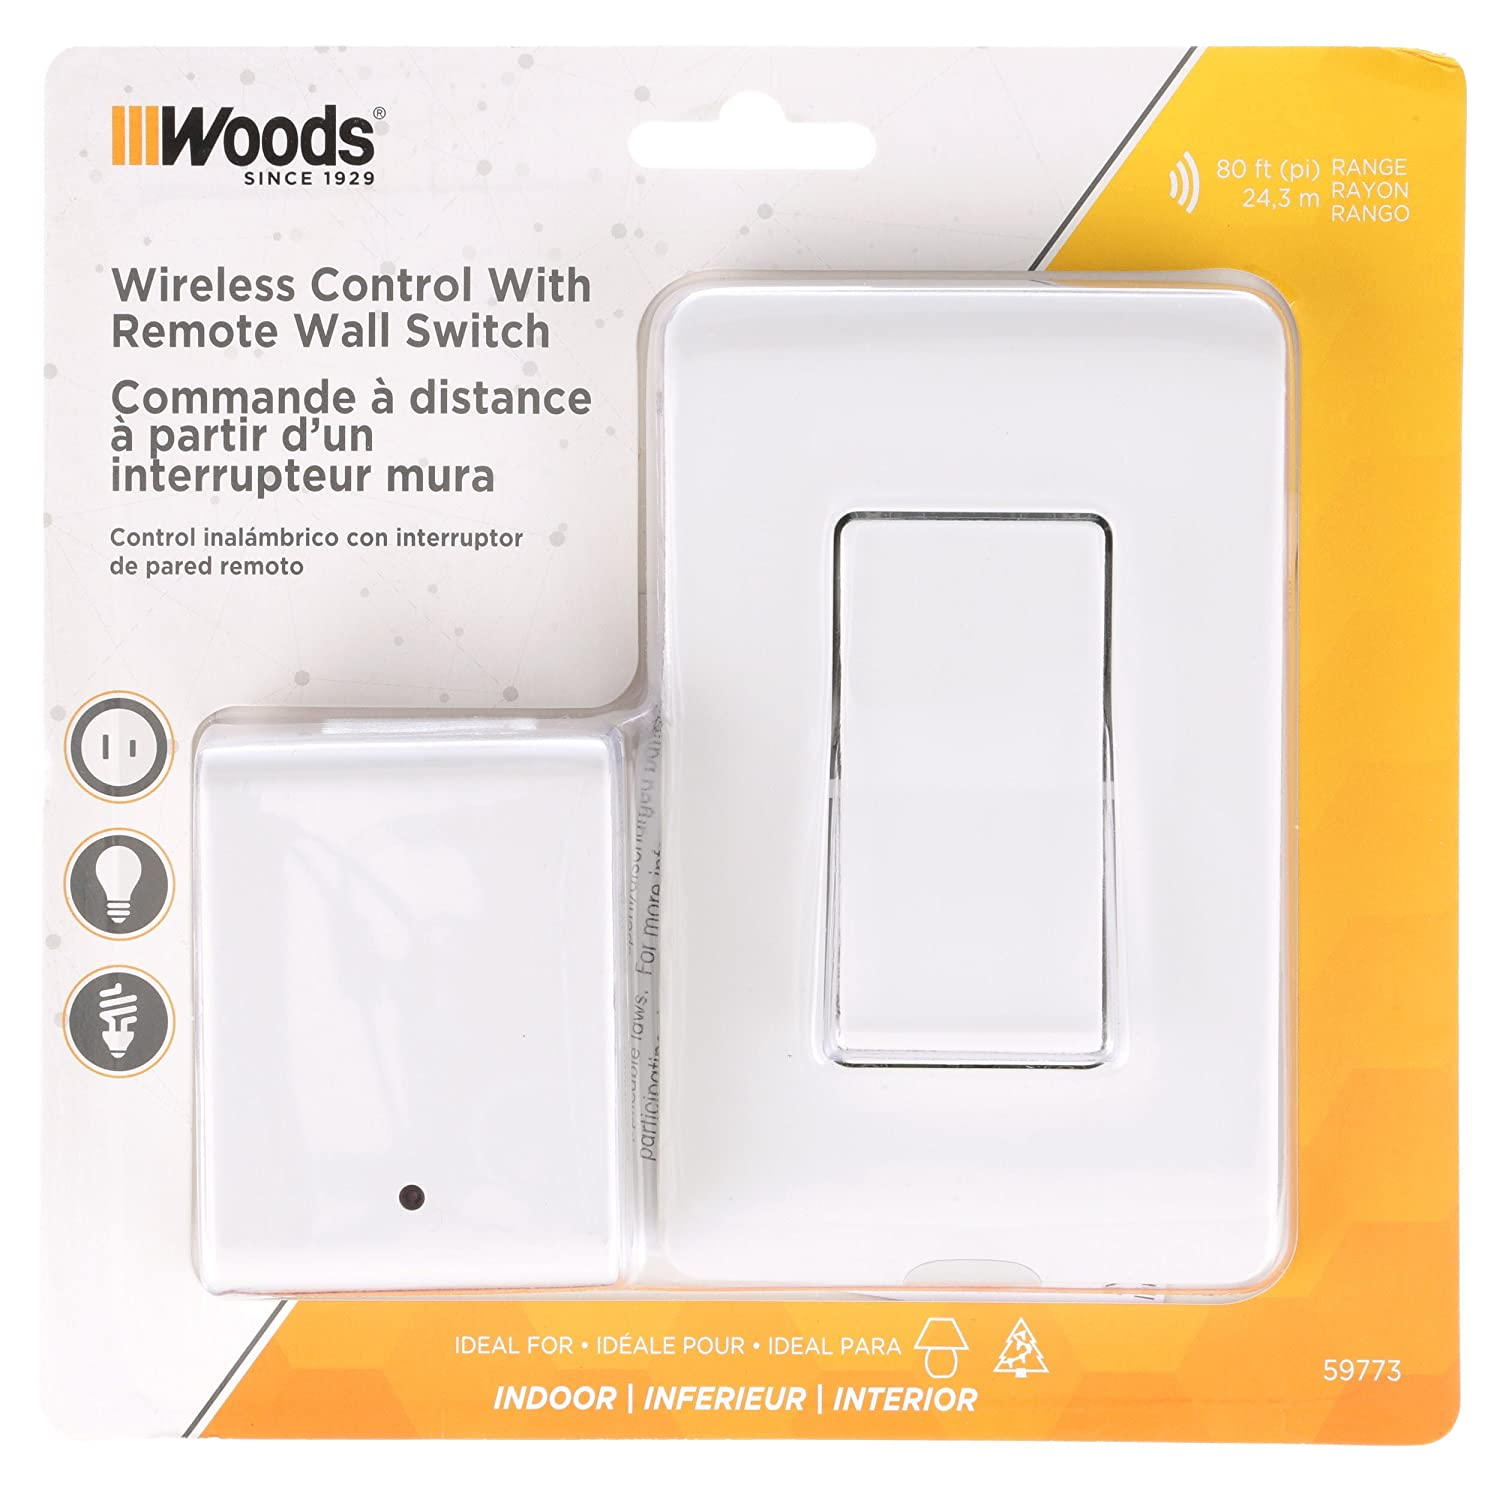 Woods Indoor Remote Control For Lights With Wall Switch 1 Polarized X10 Wiring Diagram Outlet